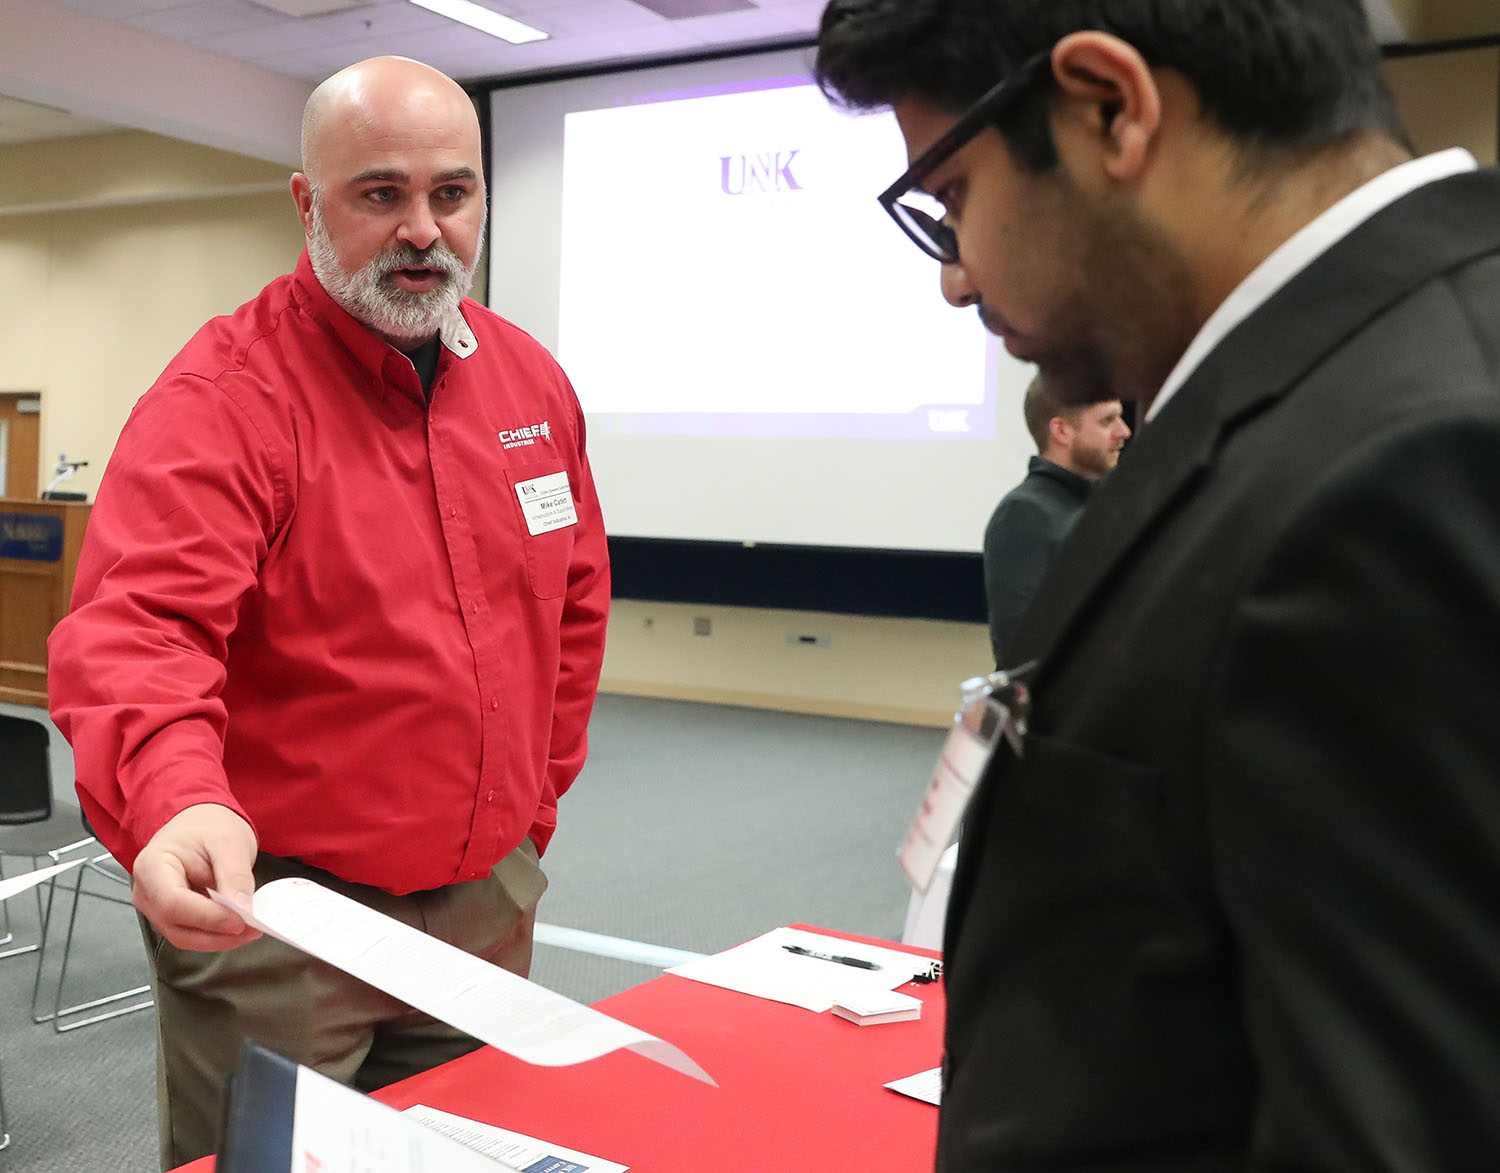 Mike Catlett, infrastructure and support manager for Grand Island-based Chief Industries, left, meets with a student Thursday during a career event hosted by UNK's Cyber Systems Department. (Photos by Corbey R. Dorsey, UNK Communications)